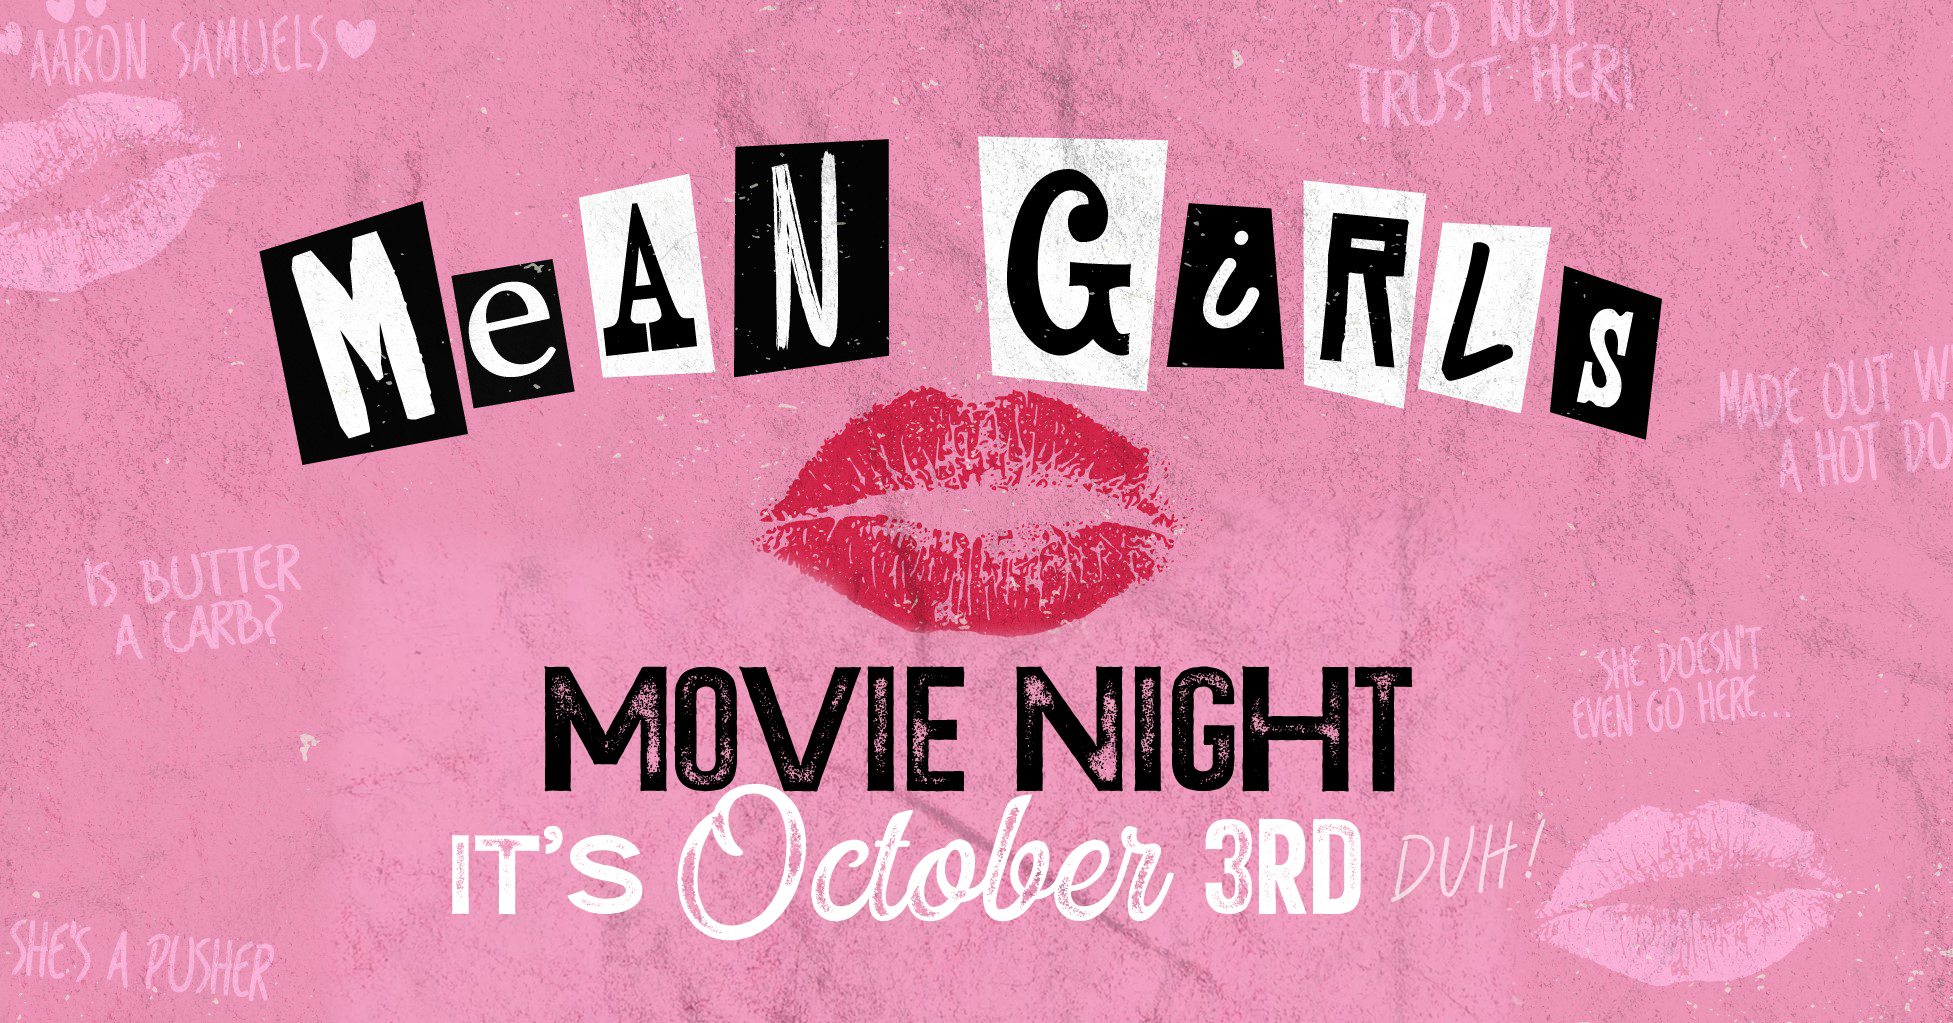 Promo image of Mean Girls Movie Night on the Skydeck